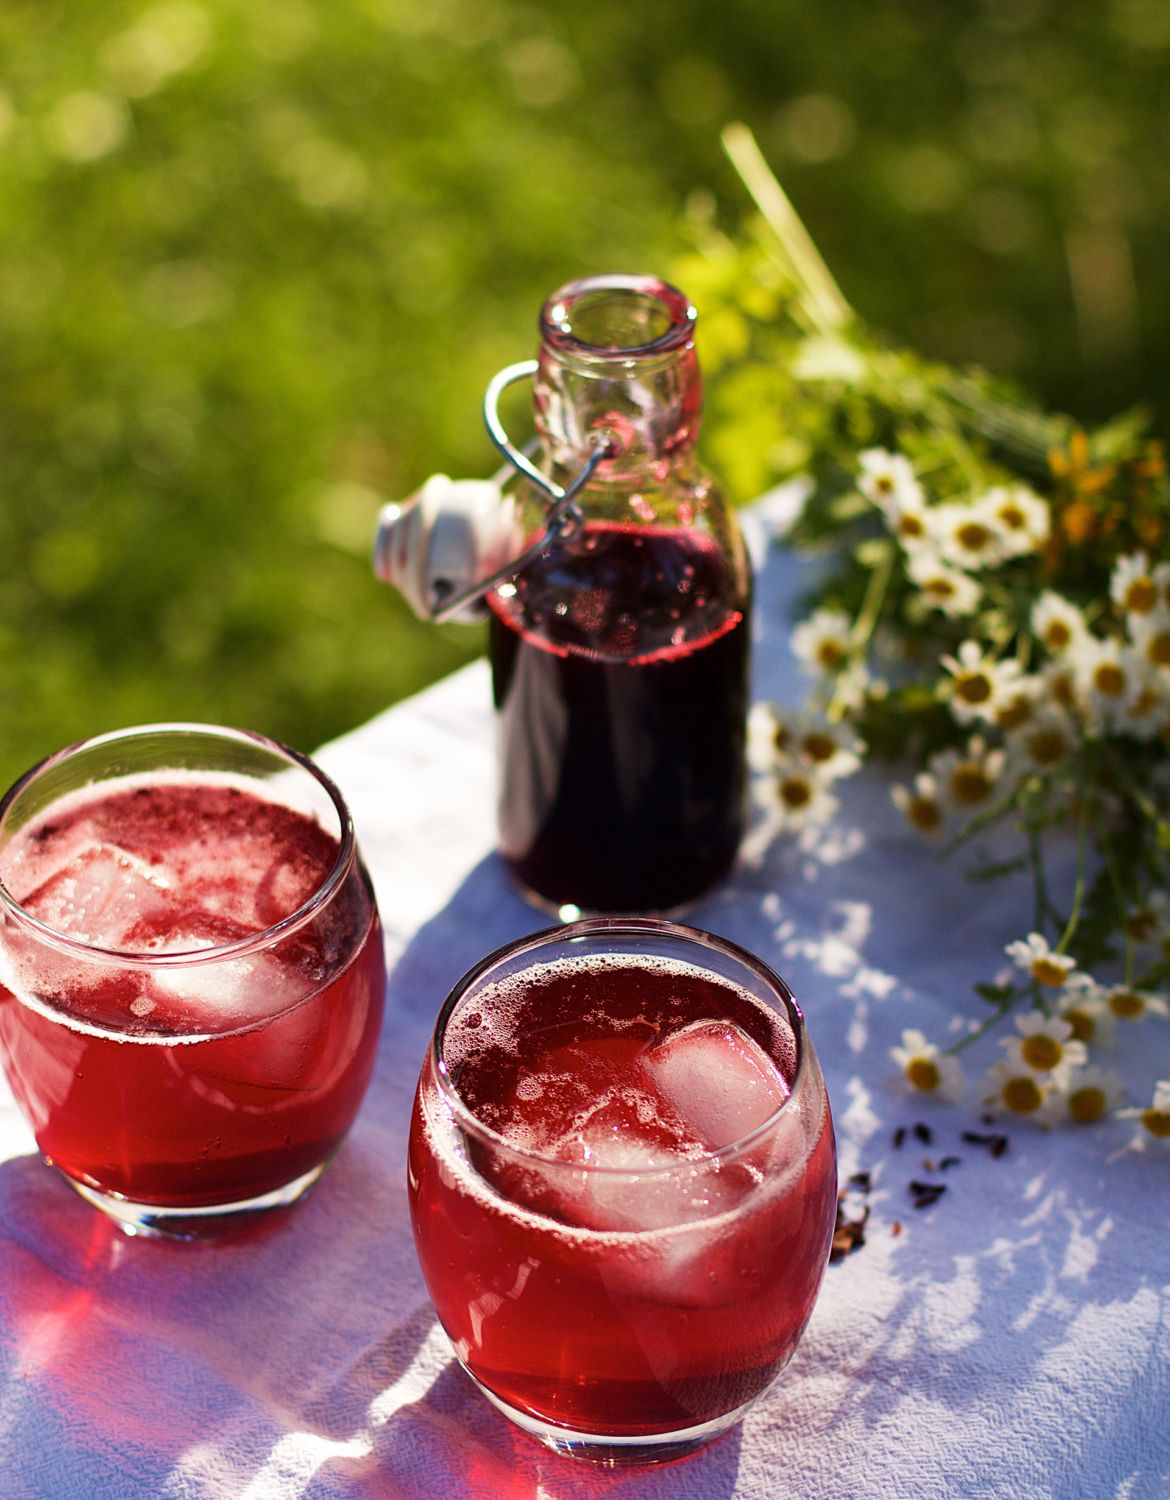 How To Make Your Own Hibiscus Syrup Hibiscus Syrup Hibiscus Syrup Recipe Syrup Recipe